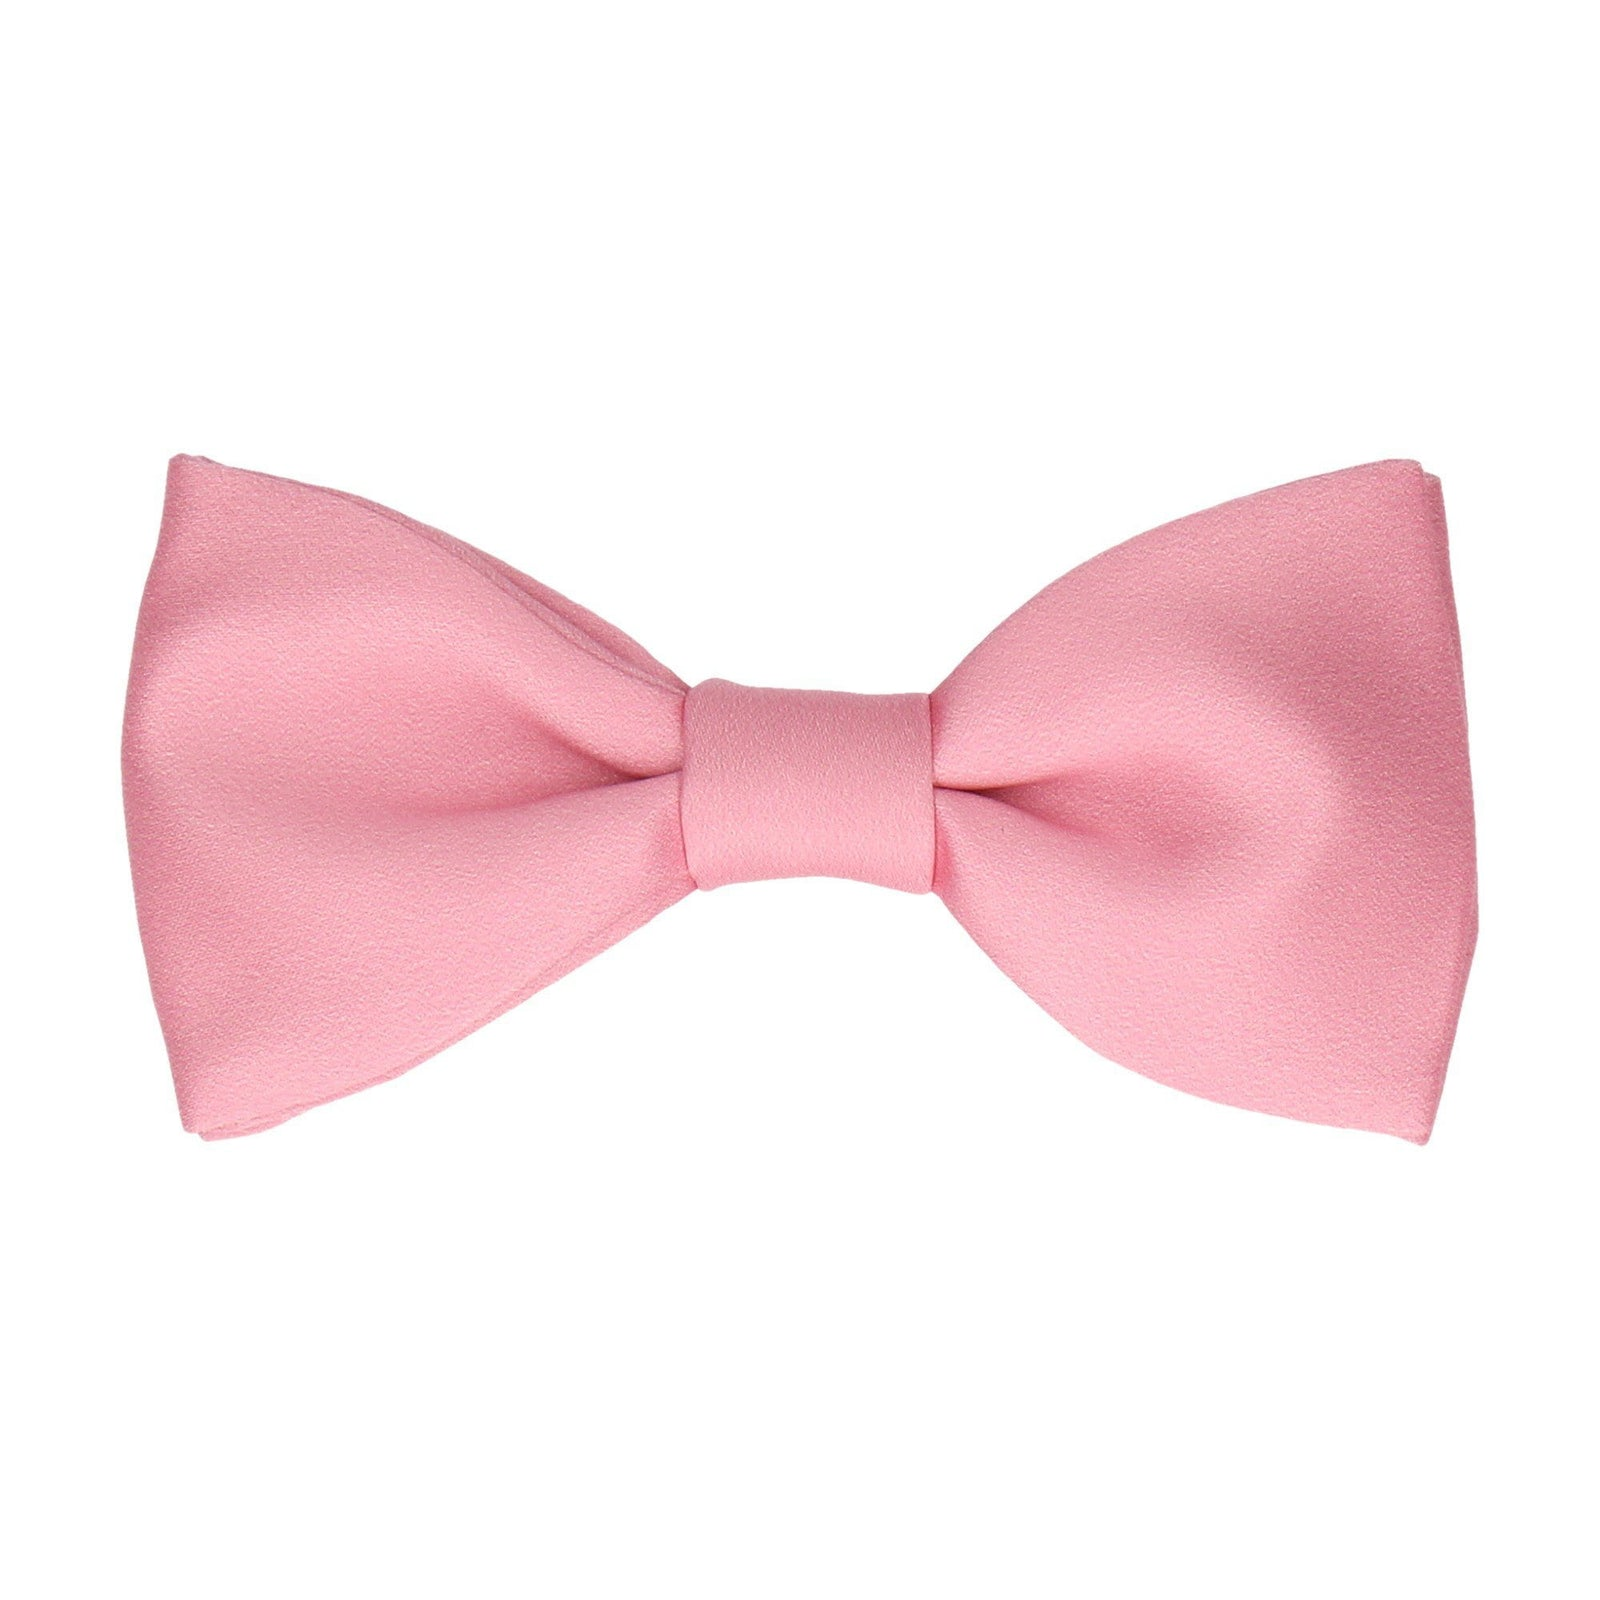 Plain Solid Blush Pink Bow Tie